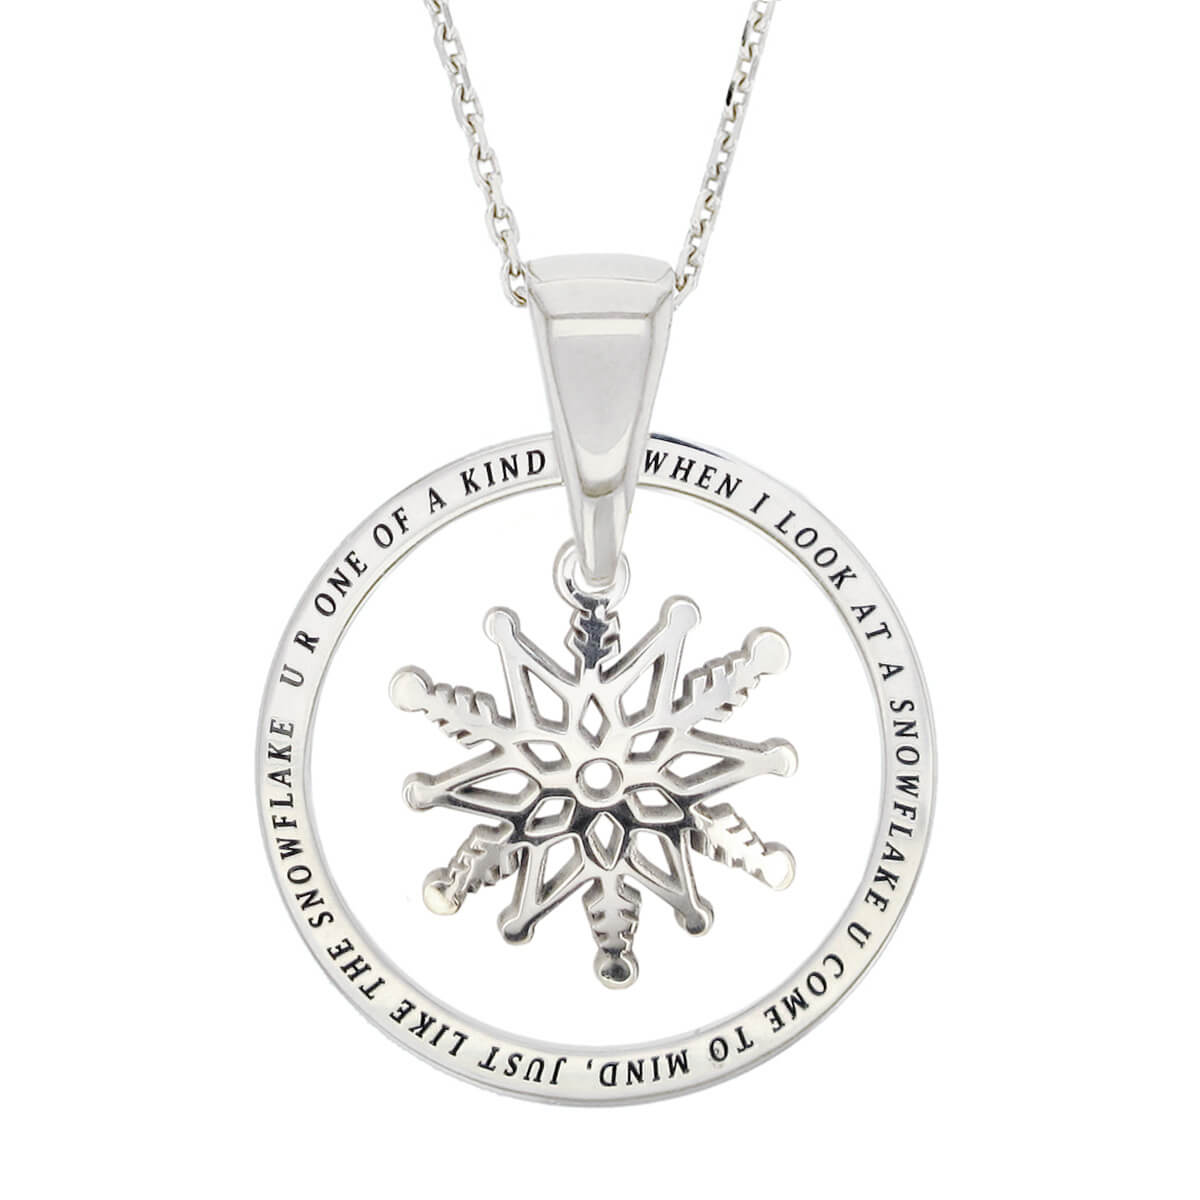 Faller Kryptos necklace, sterling silver, message pendant, personalised engraving, make your own, jewellery, gift, celebration, symbol, snowflake, Christmas gift